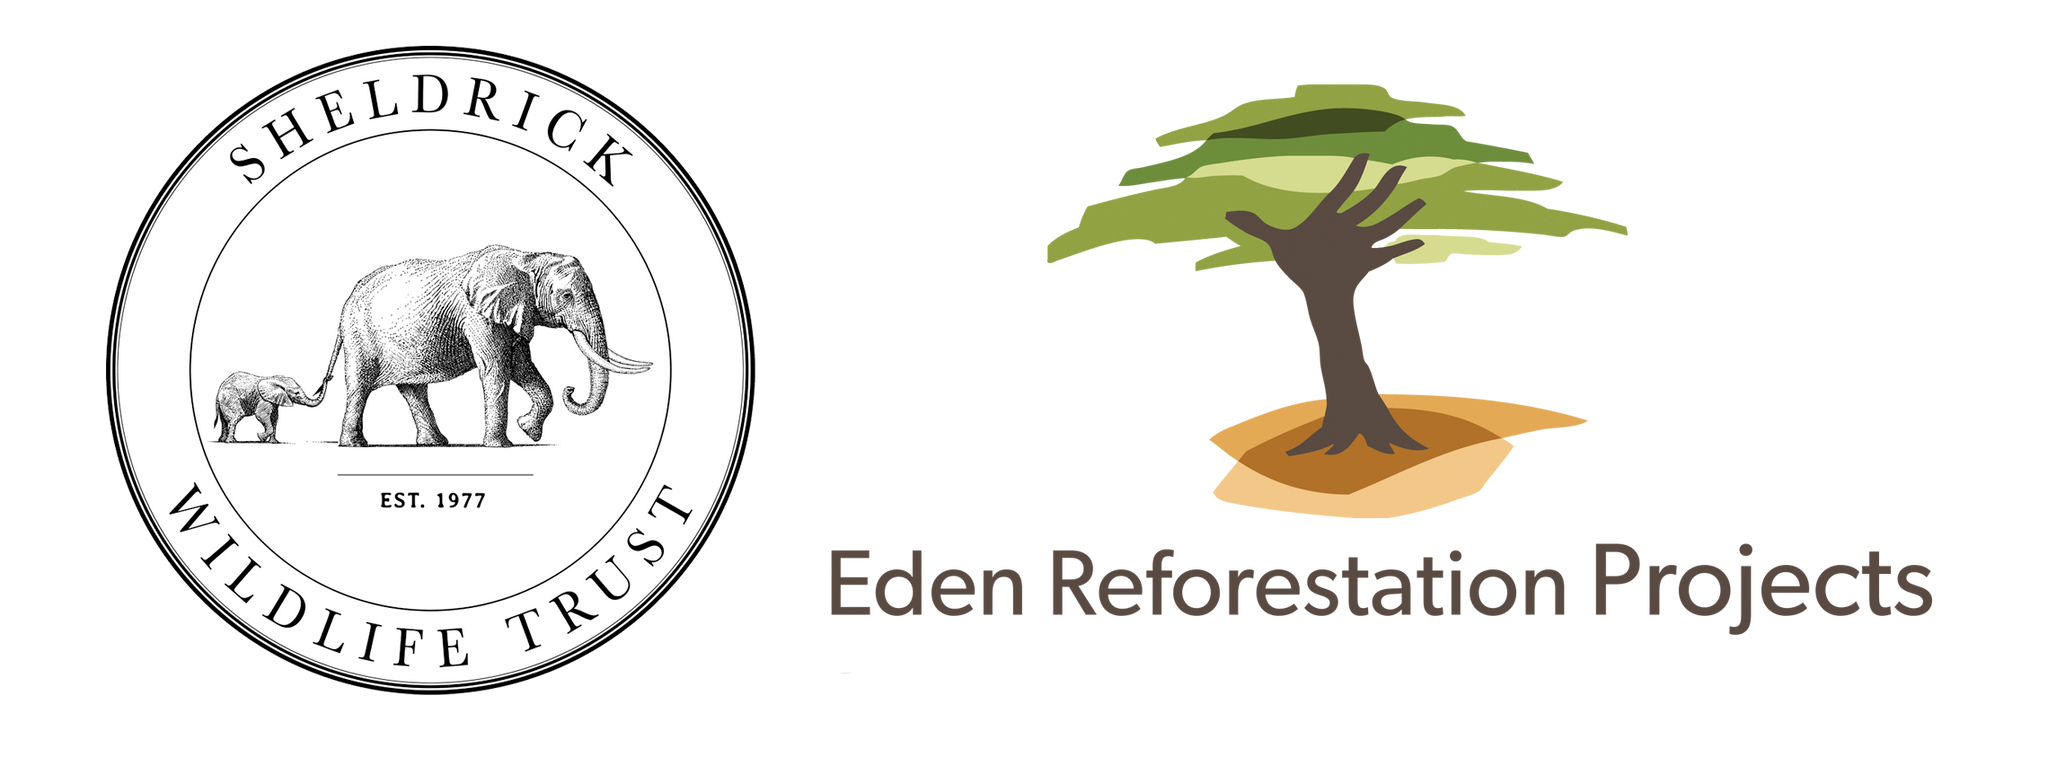 Eden Reforestation Projects | Sheldrick Wildlife Trust